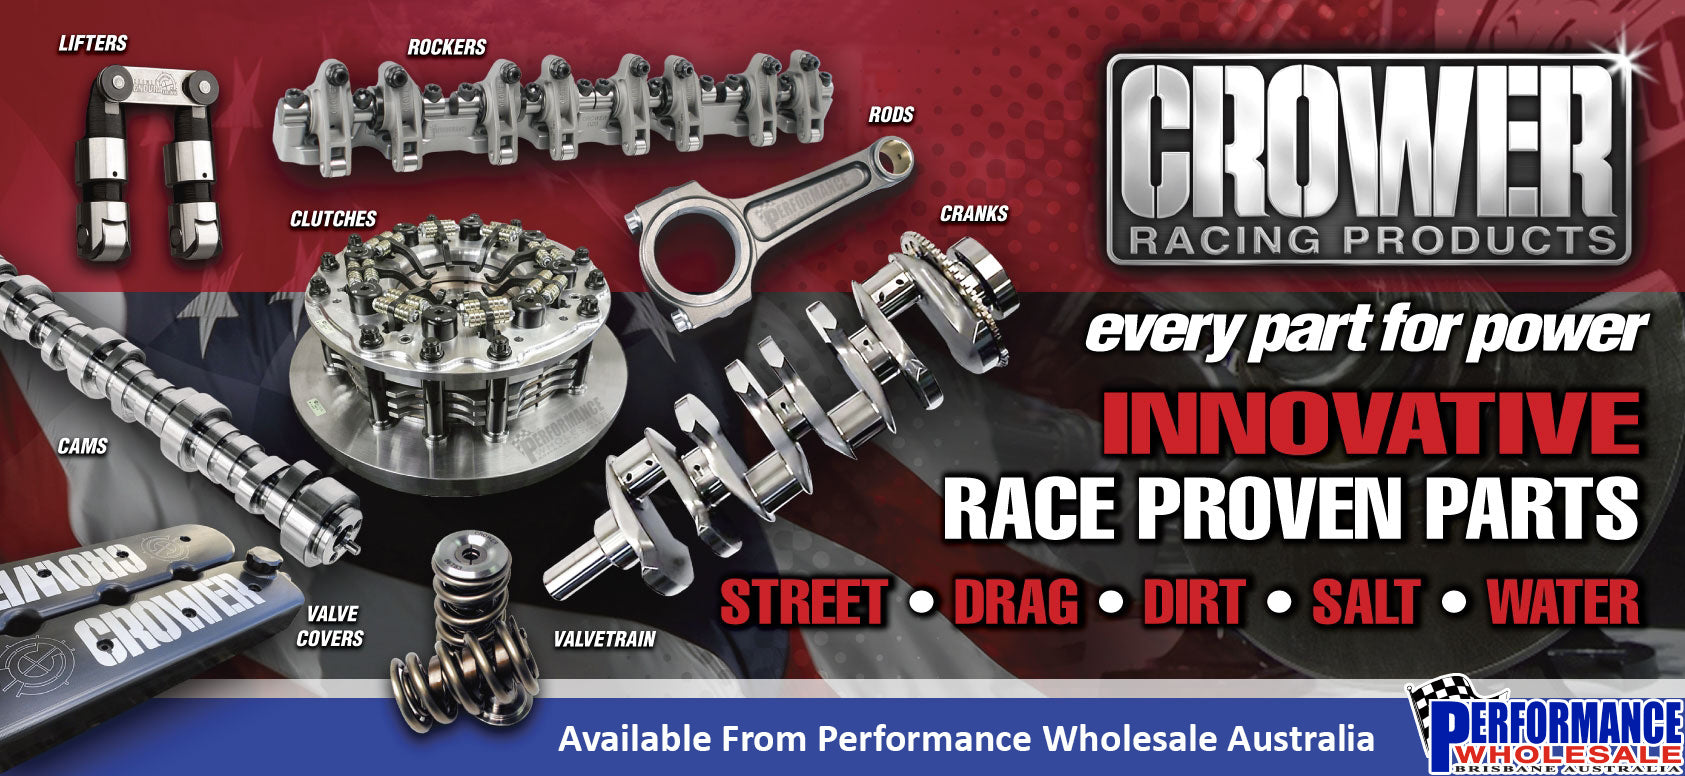 Crower Racing Products ~ Every Part For Power